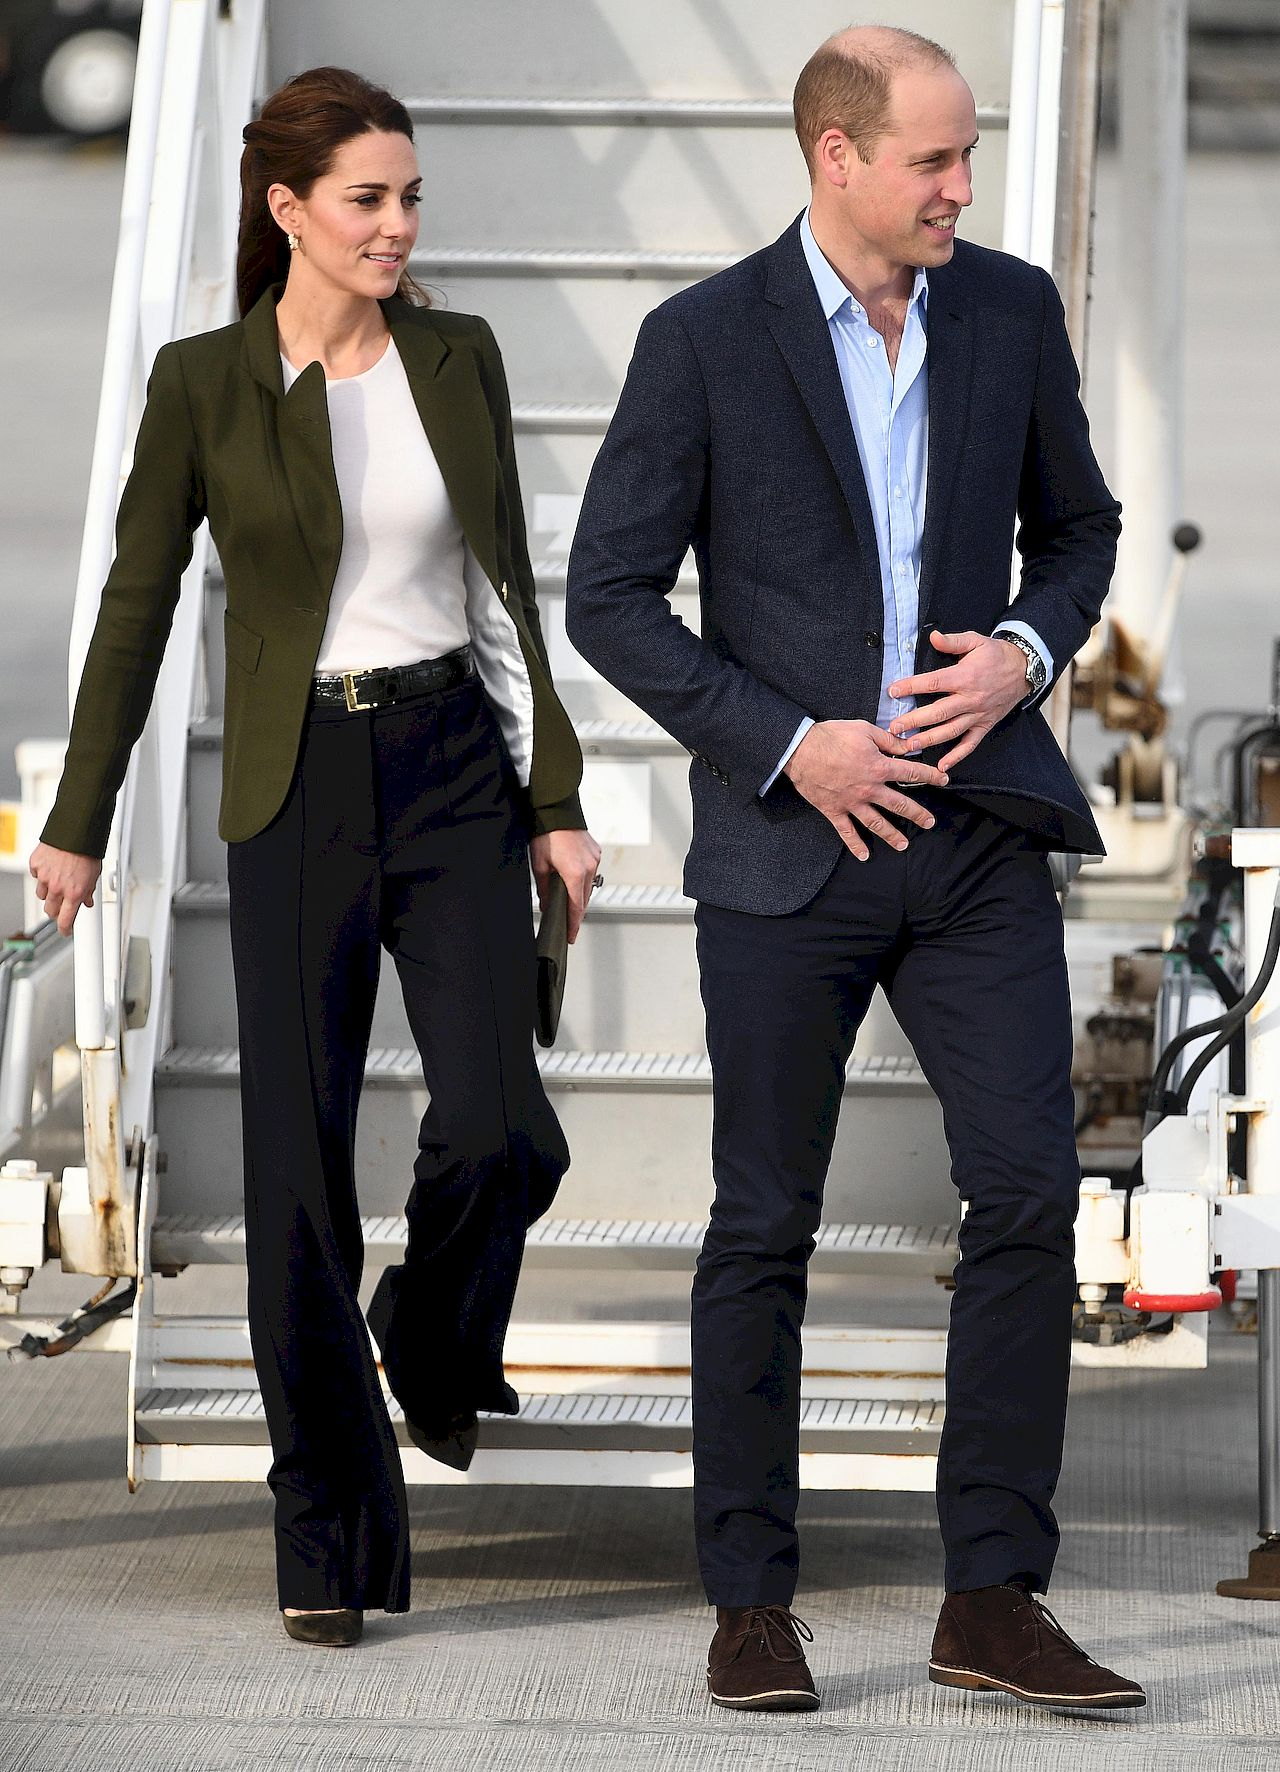 Duke and Duchess of Cambridge's Official Visit to Cyprus